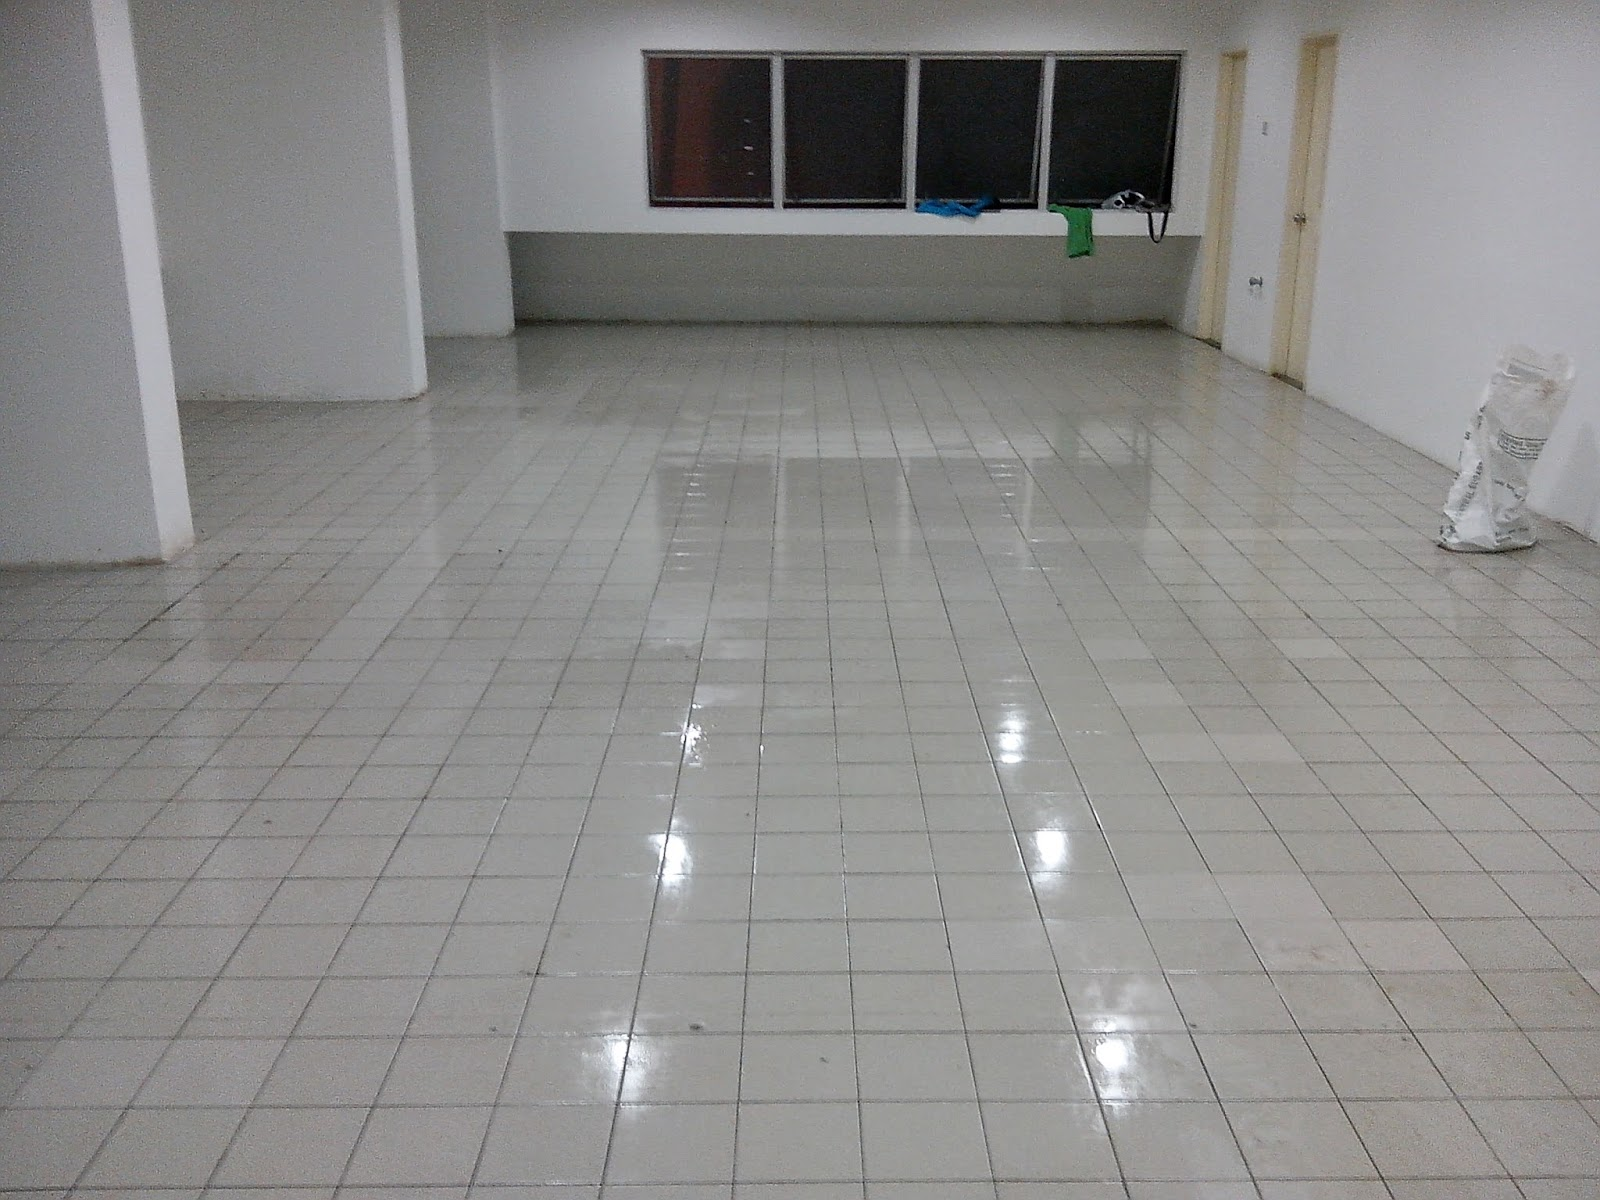 Best way to remove floor tile adhesive choice image tile carpet cleaning removing carpet adhesive professional cleaning carpet cleaning removing carpet adhesive doublecrazyfo choice image doublecrazyfo Images